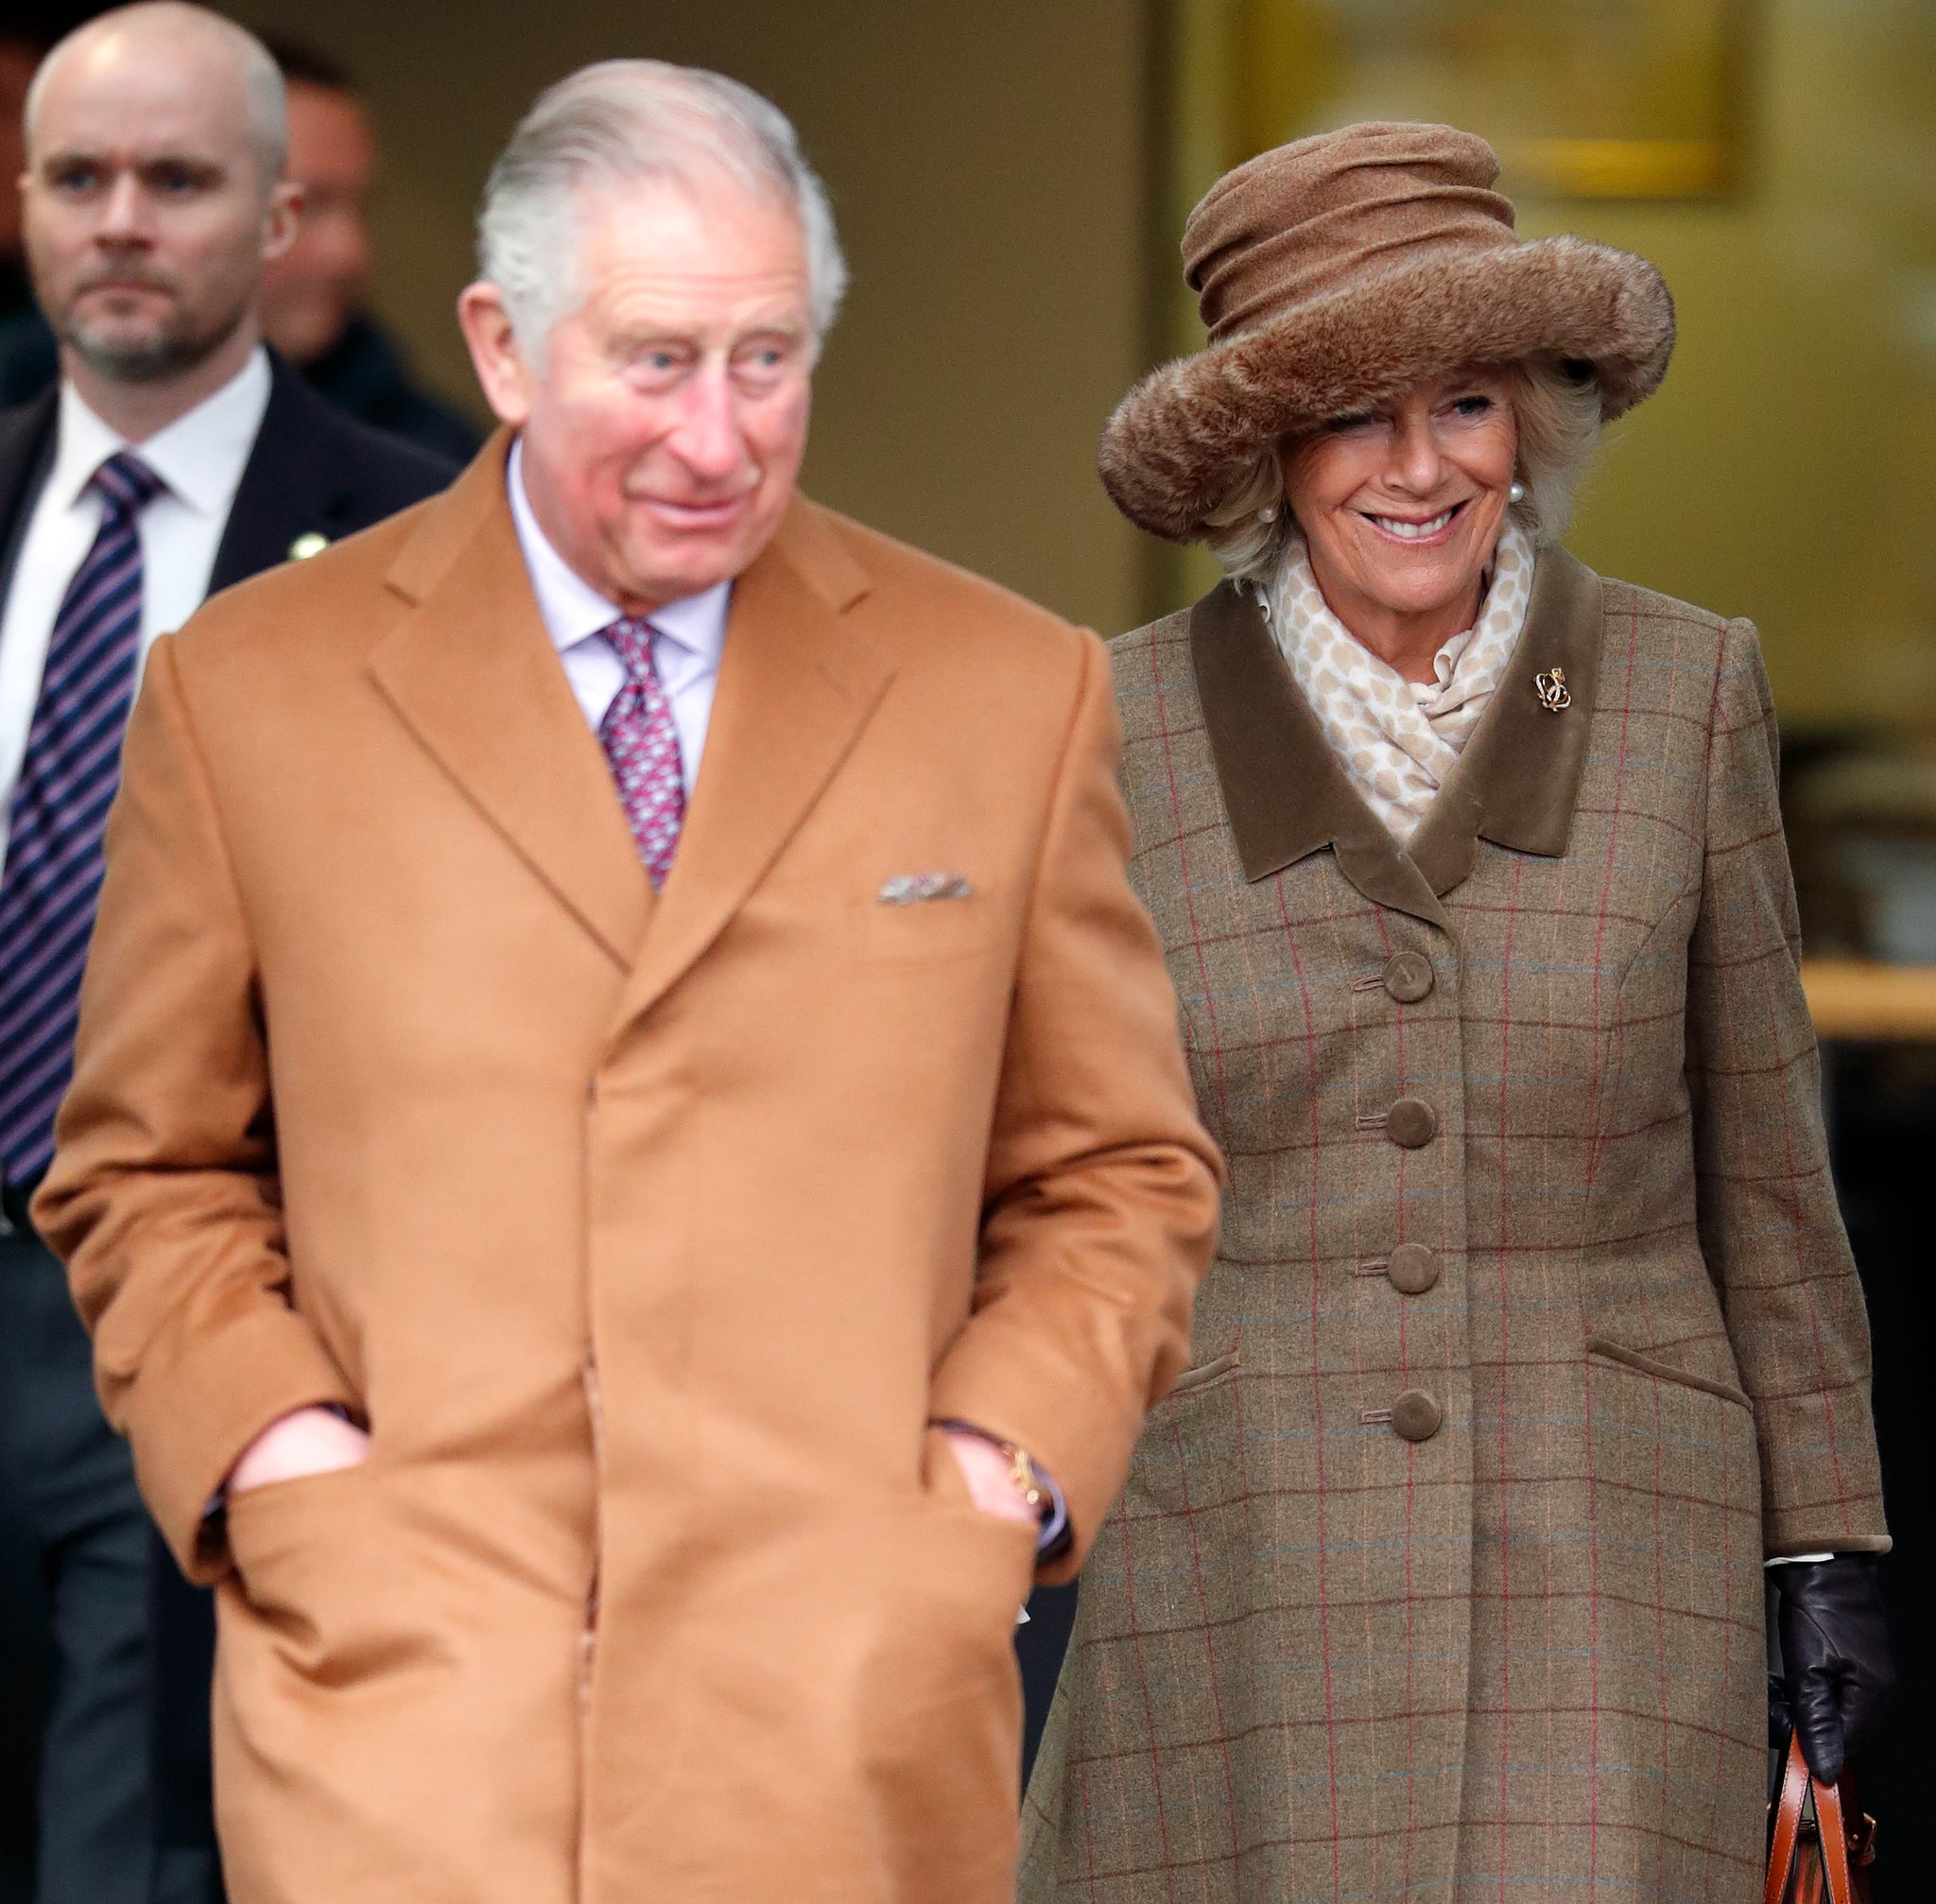 ASCOT, UNITED KINGDOM - NOVEMBER 23: (EMBARGOED FOR PUBLICATION IN UK NEWSPAPERS UNTIL 24 HOURS AFTER CREATE DATE AND TIME) Prince Charles, Prince of Wales and Camilla, Duchess of Cornwall attend The Prince's Countryside Fund Raceday at Ascot Racecourse on November 23, 2018 in Ascot, England. (Photo by Max Mumby/Indigo/Getty Images)